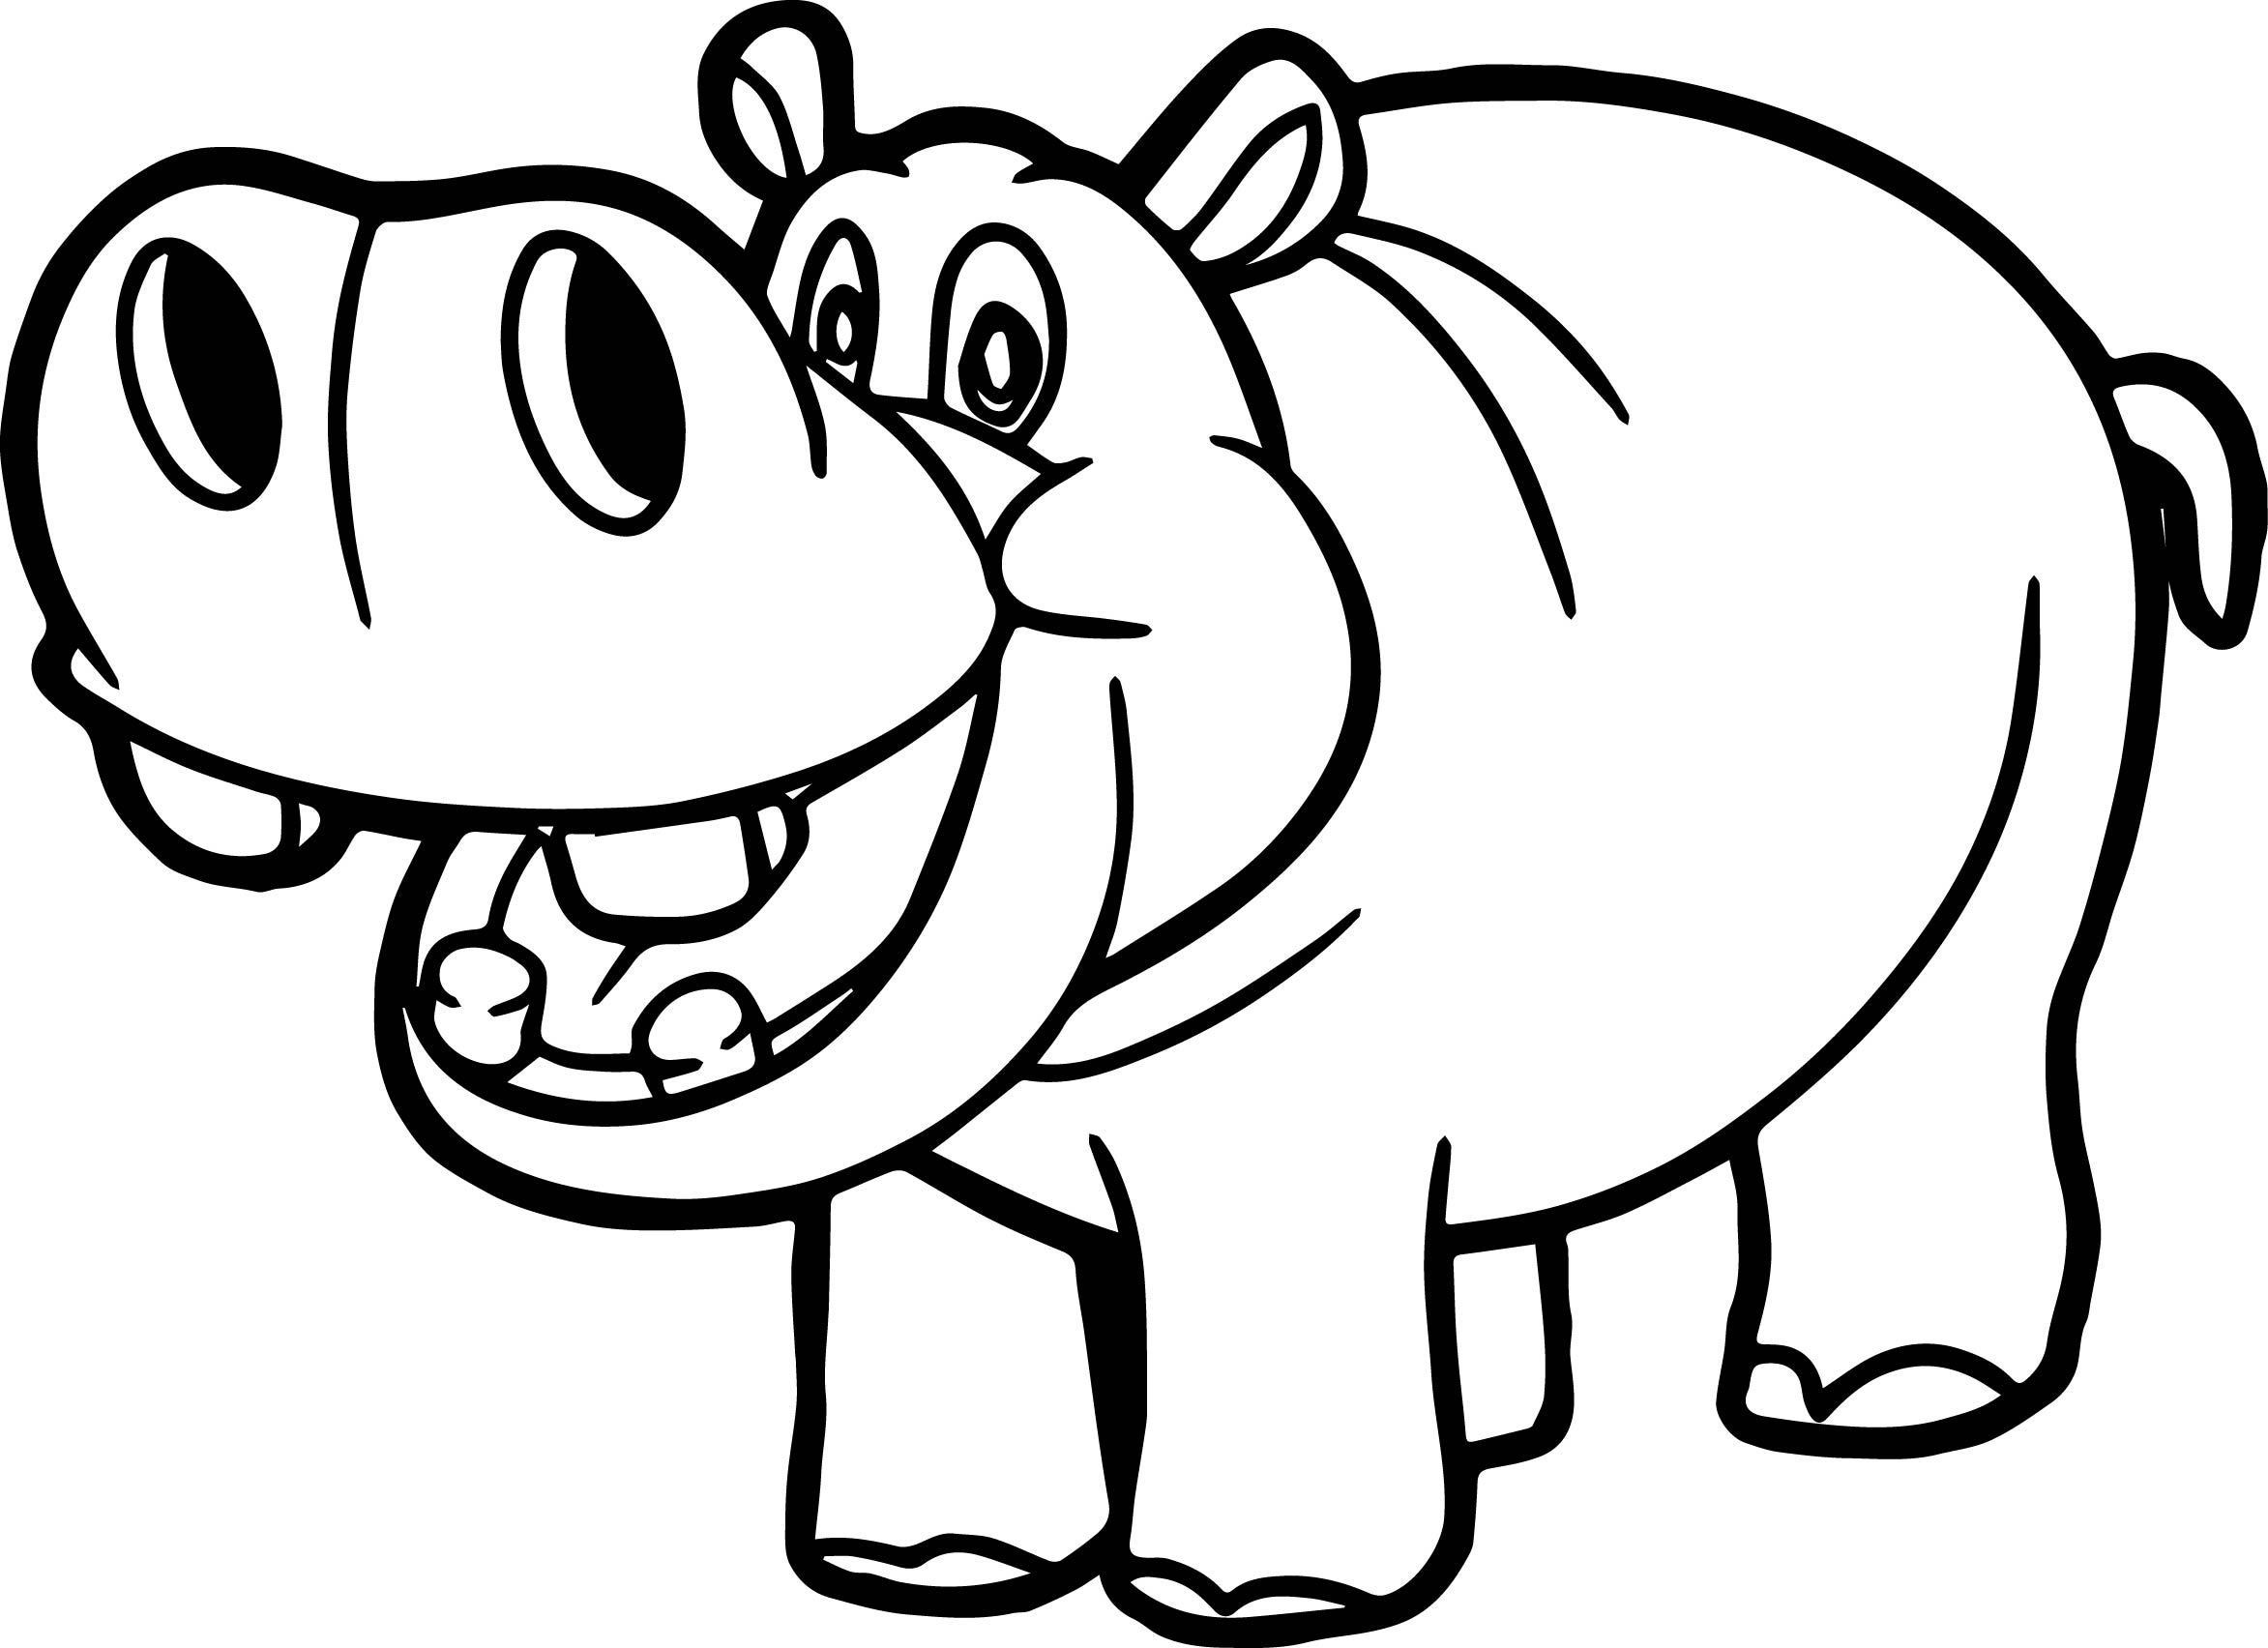 Hippo outline drawing